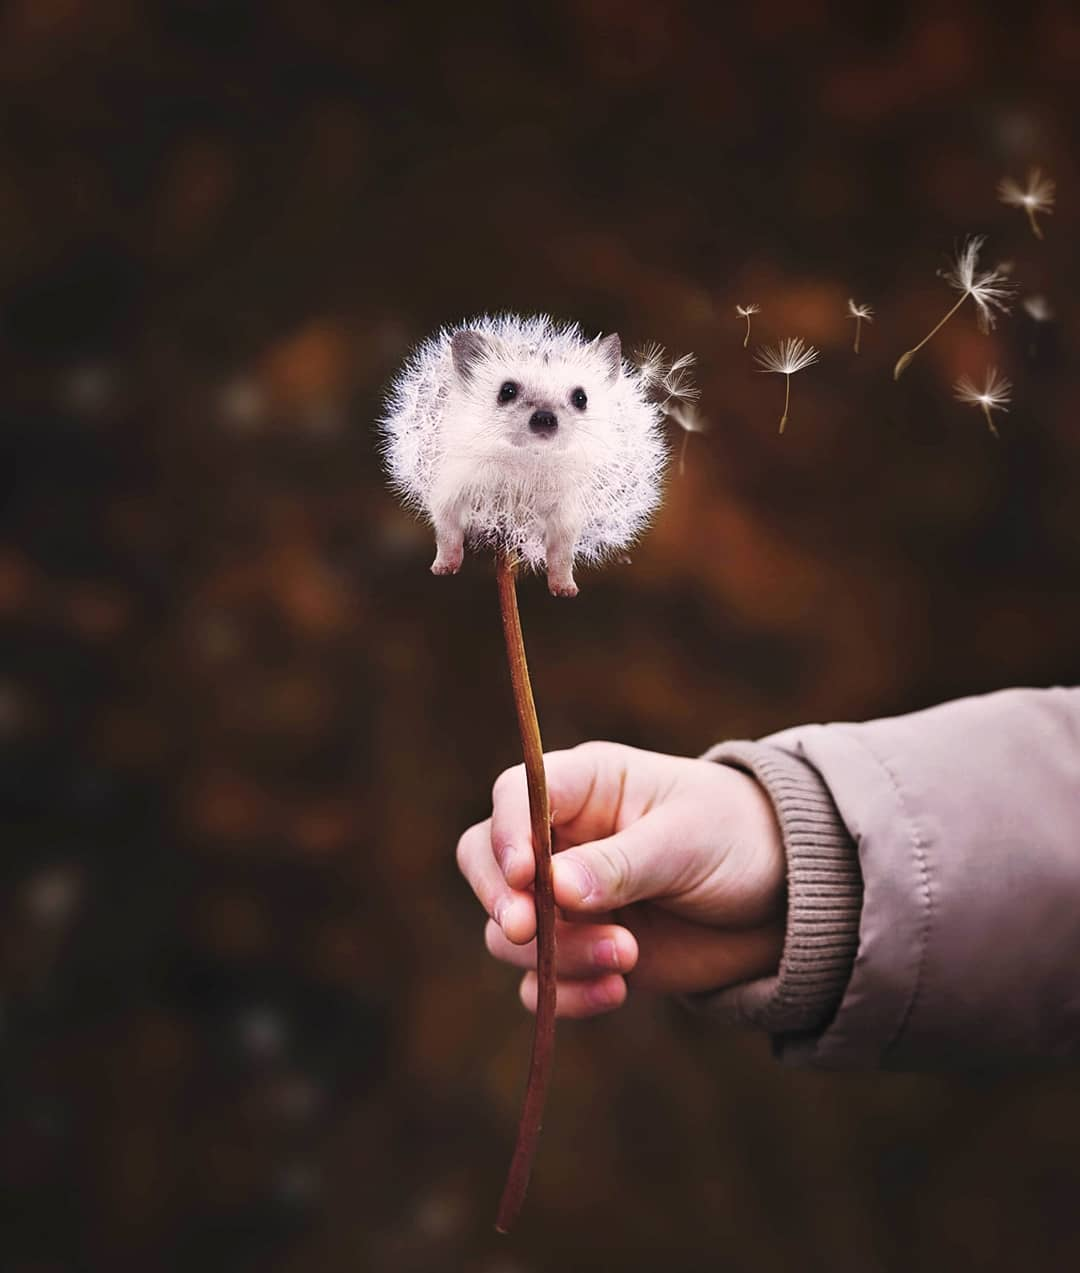 photomanipulation dandelion by ronald ong